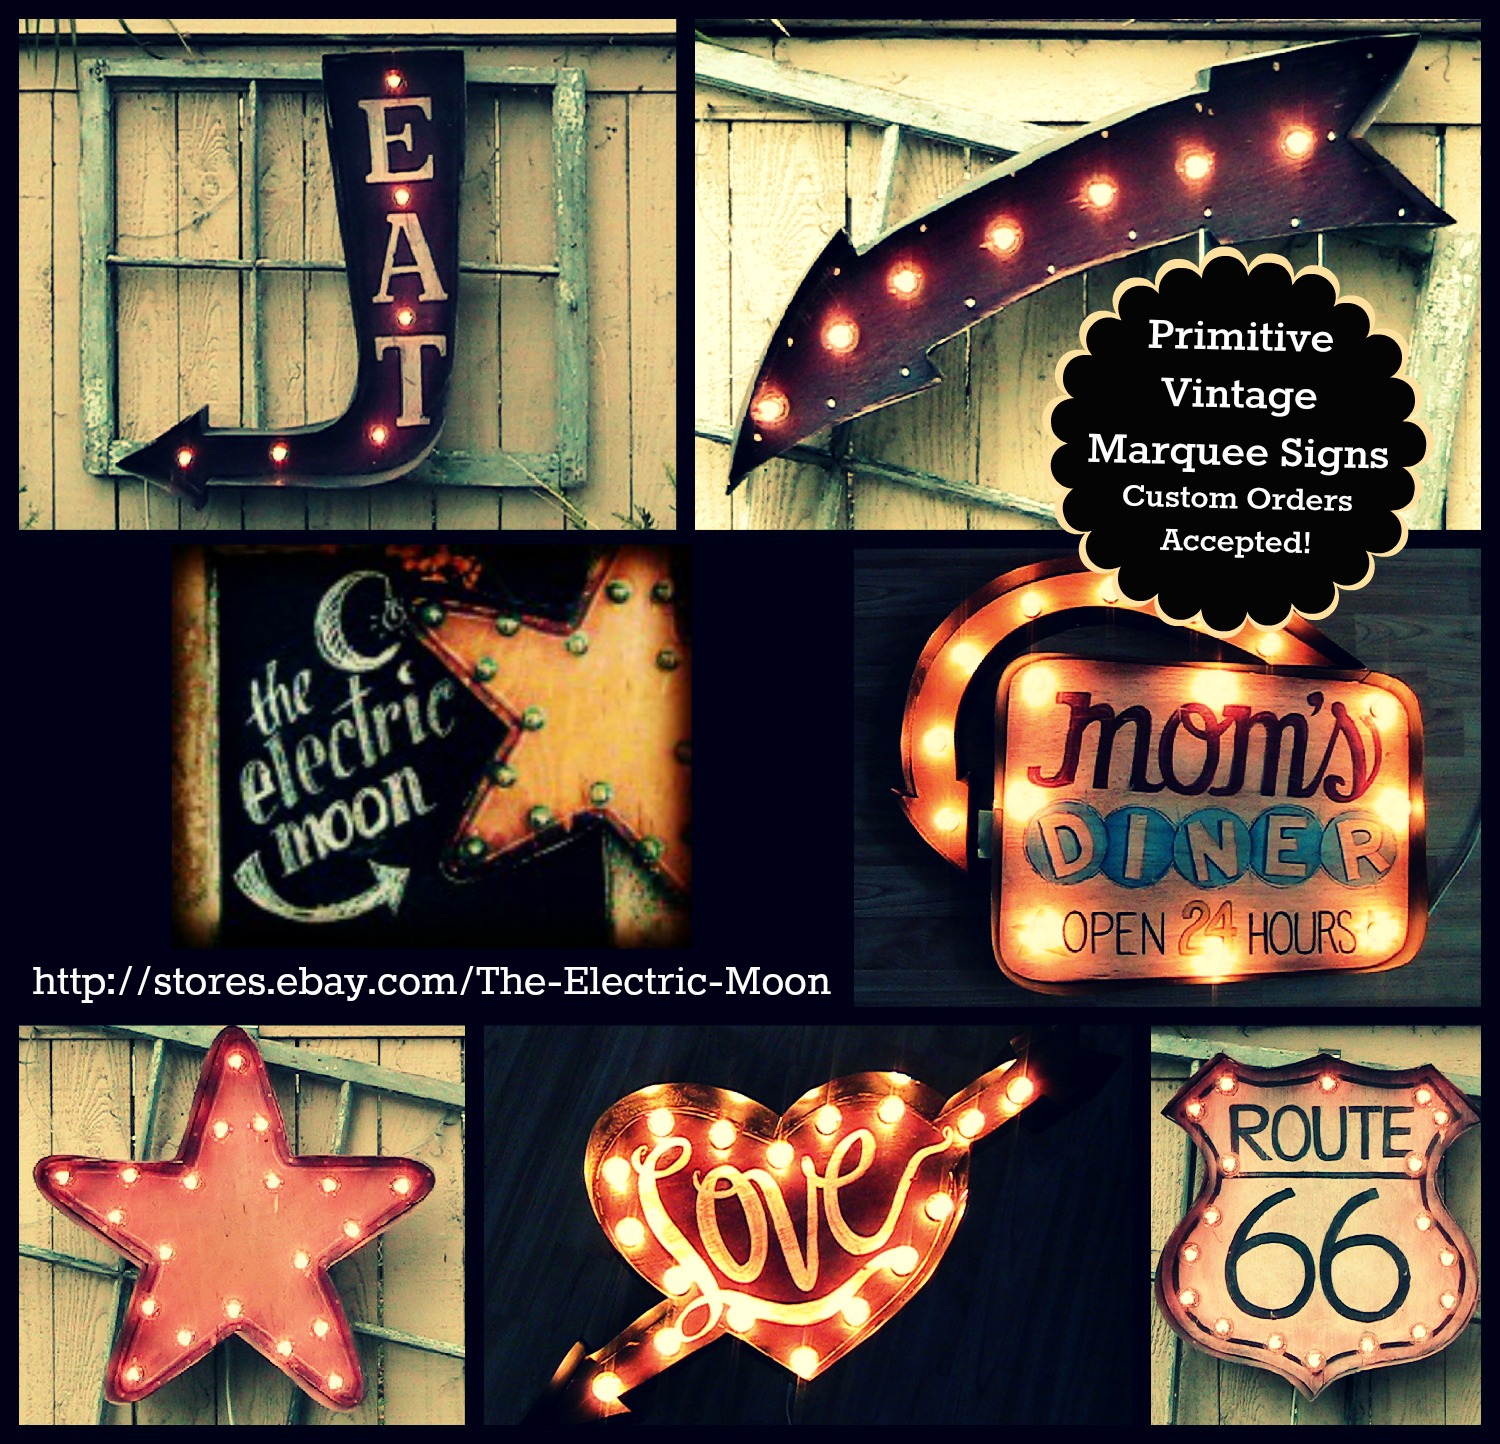 Marquee and Vaudeville signs on Pinterest | Vintage Signs ...